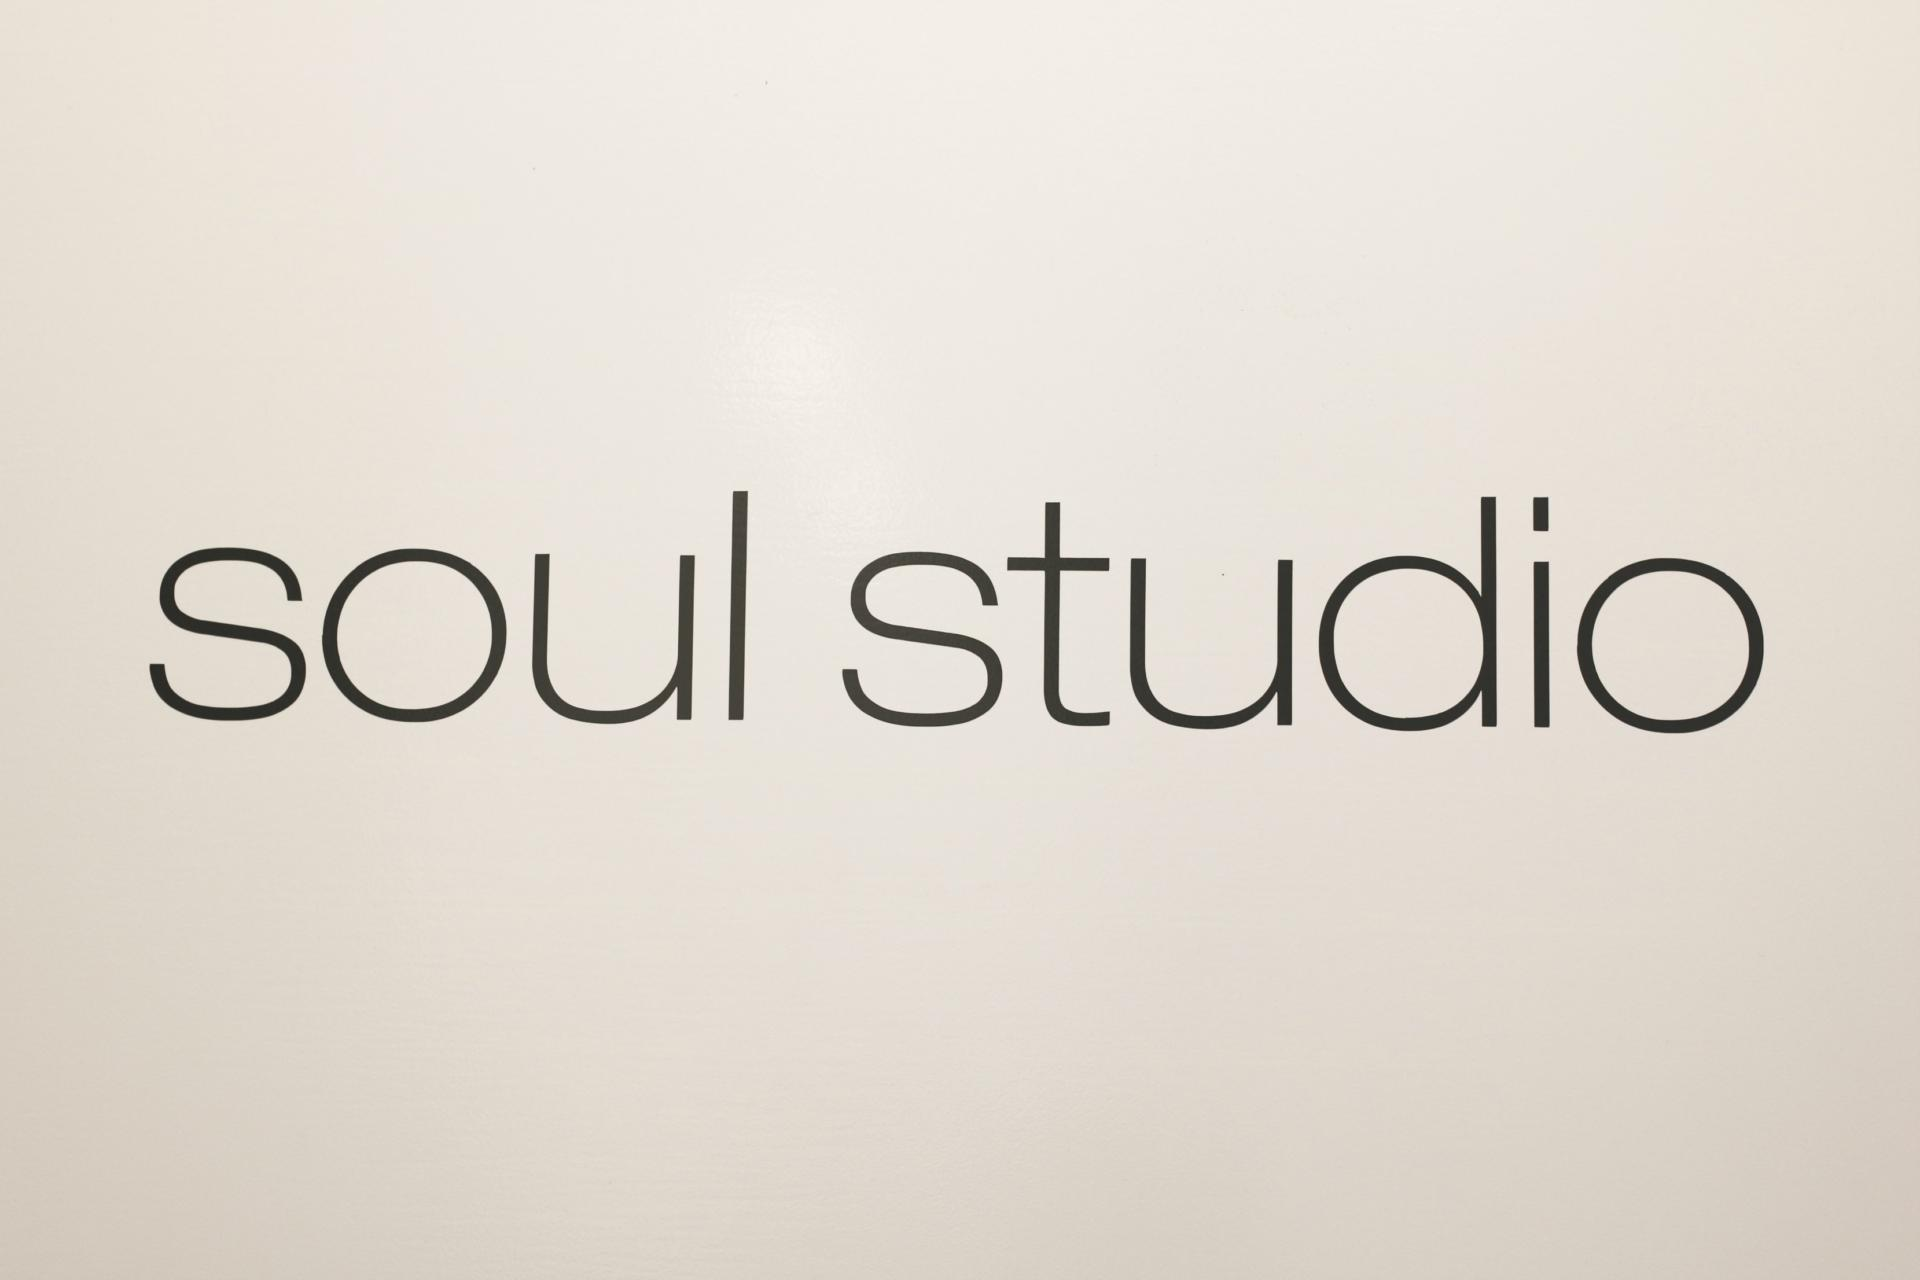 SoulCycle Soul Studio